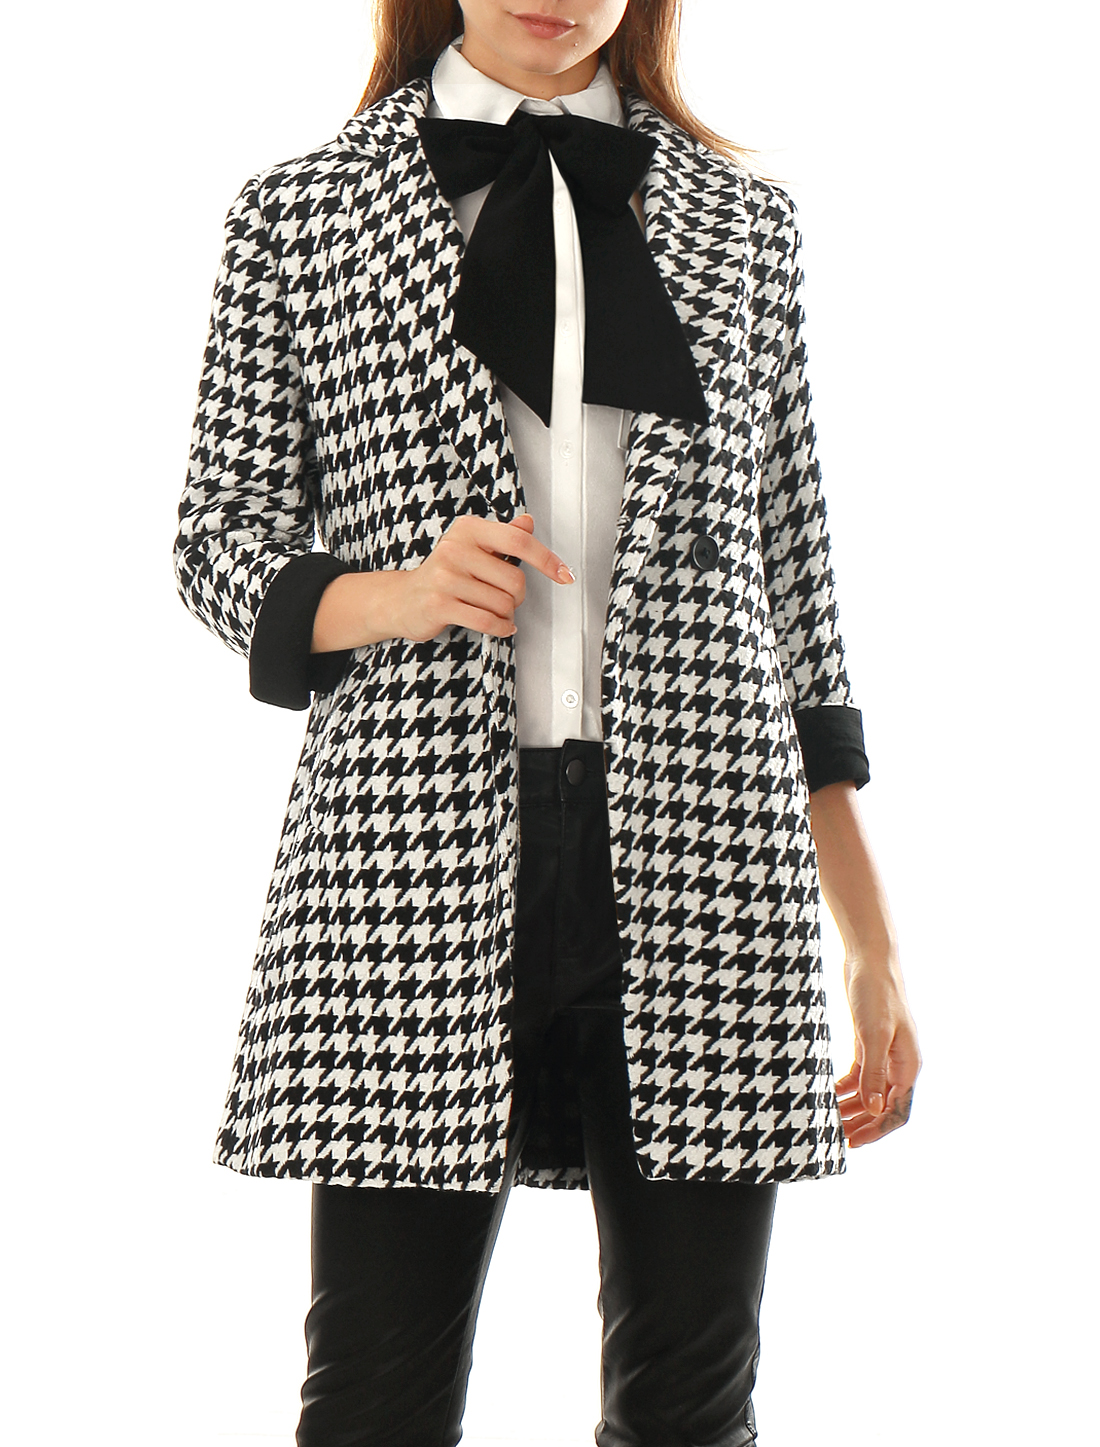 Women Houndstooth Pattern Double Breasted Worsted Coat Black S